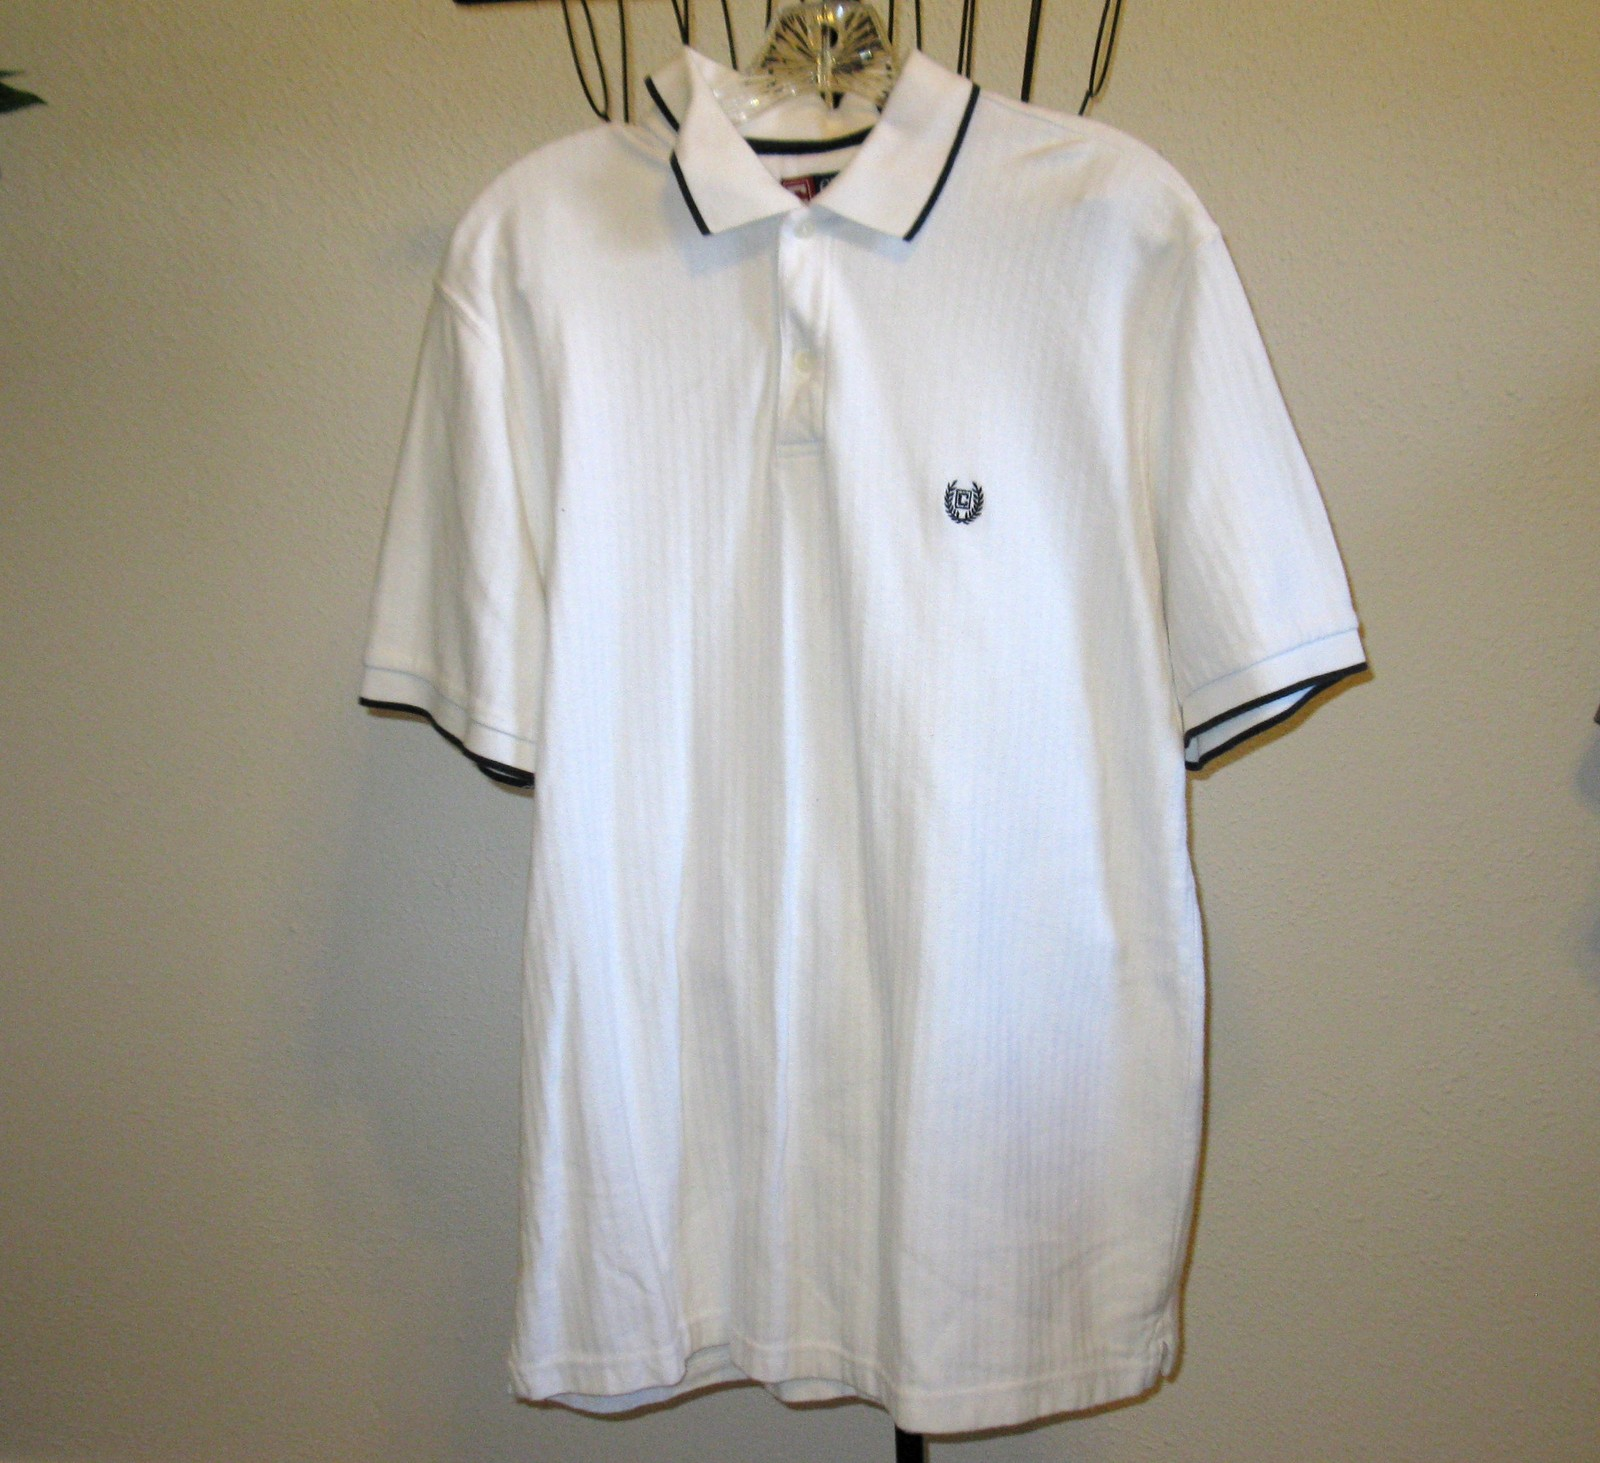 White Men's Golf Shirt by Chaps Size L/G (Large) Nice! #T845